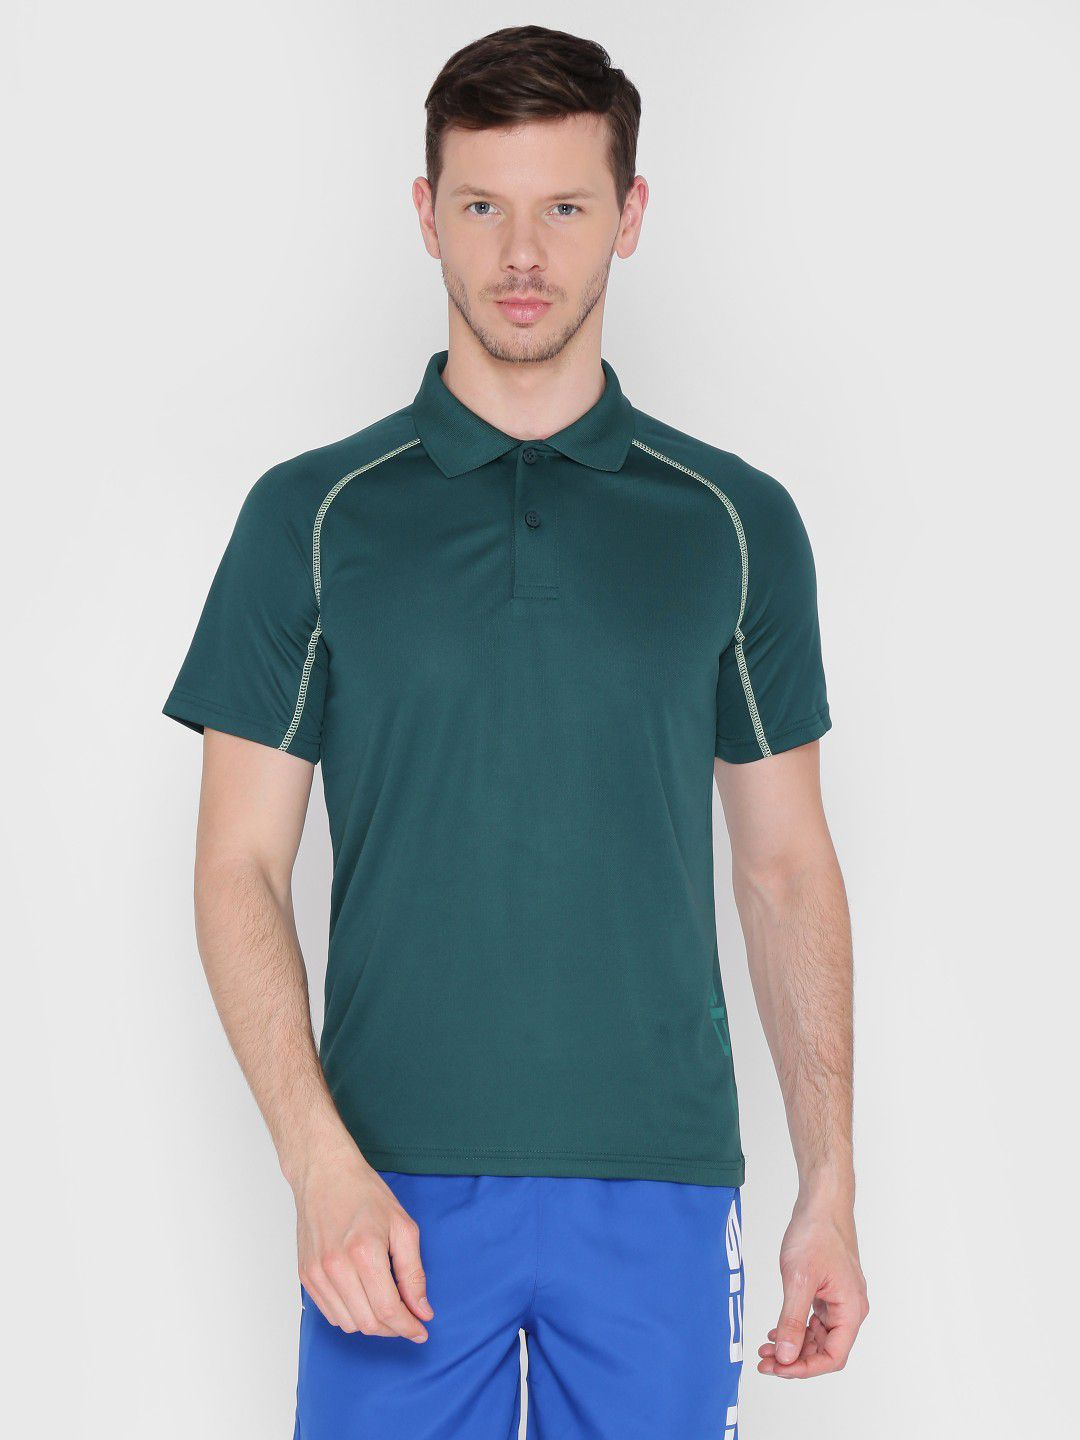 Alcis Mens Solid Olive Green Polo T-Shirt